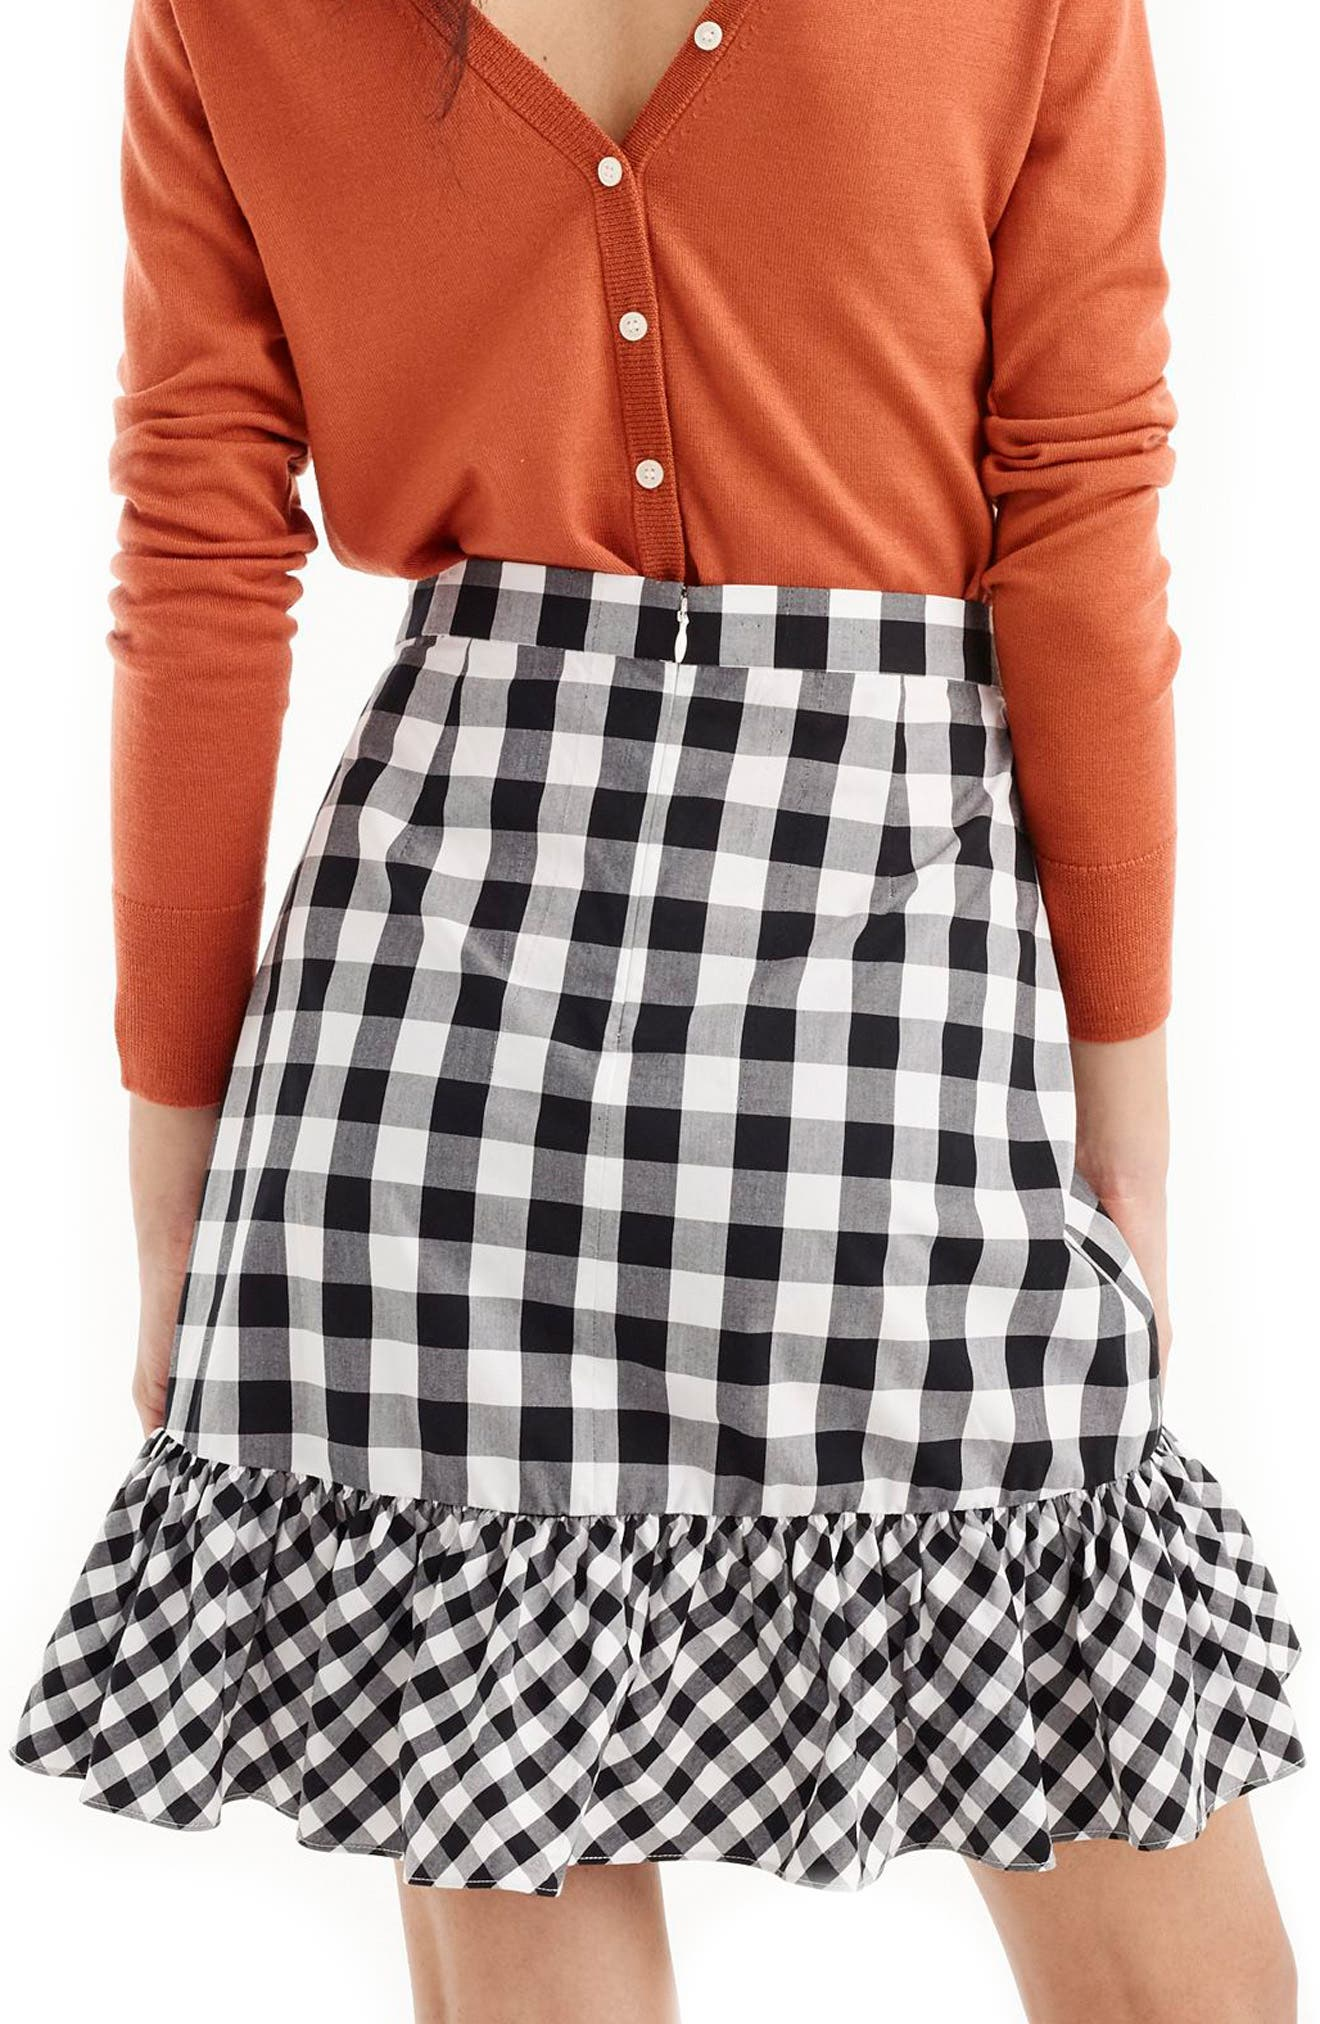 Pistachio Gingham Cotton Poplin Ruffle Skirt,                             Alternate thumbnail 2, color,                             010